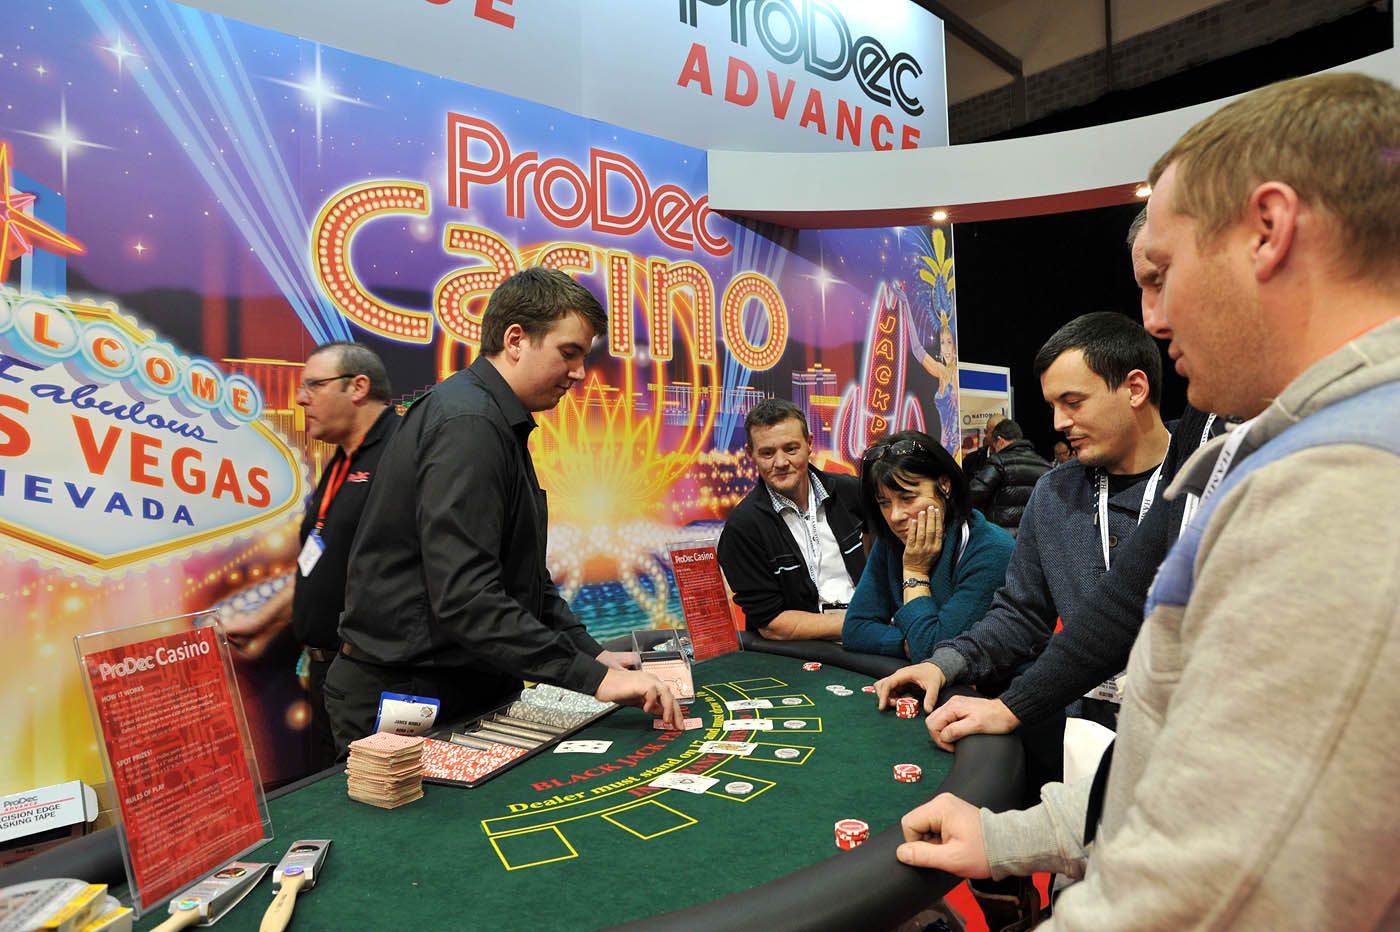 National Painting And Decorating Show - Prodec Advance Casino